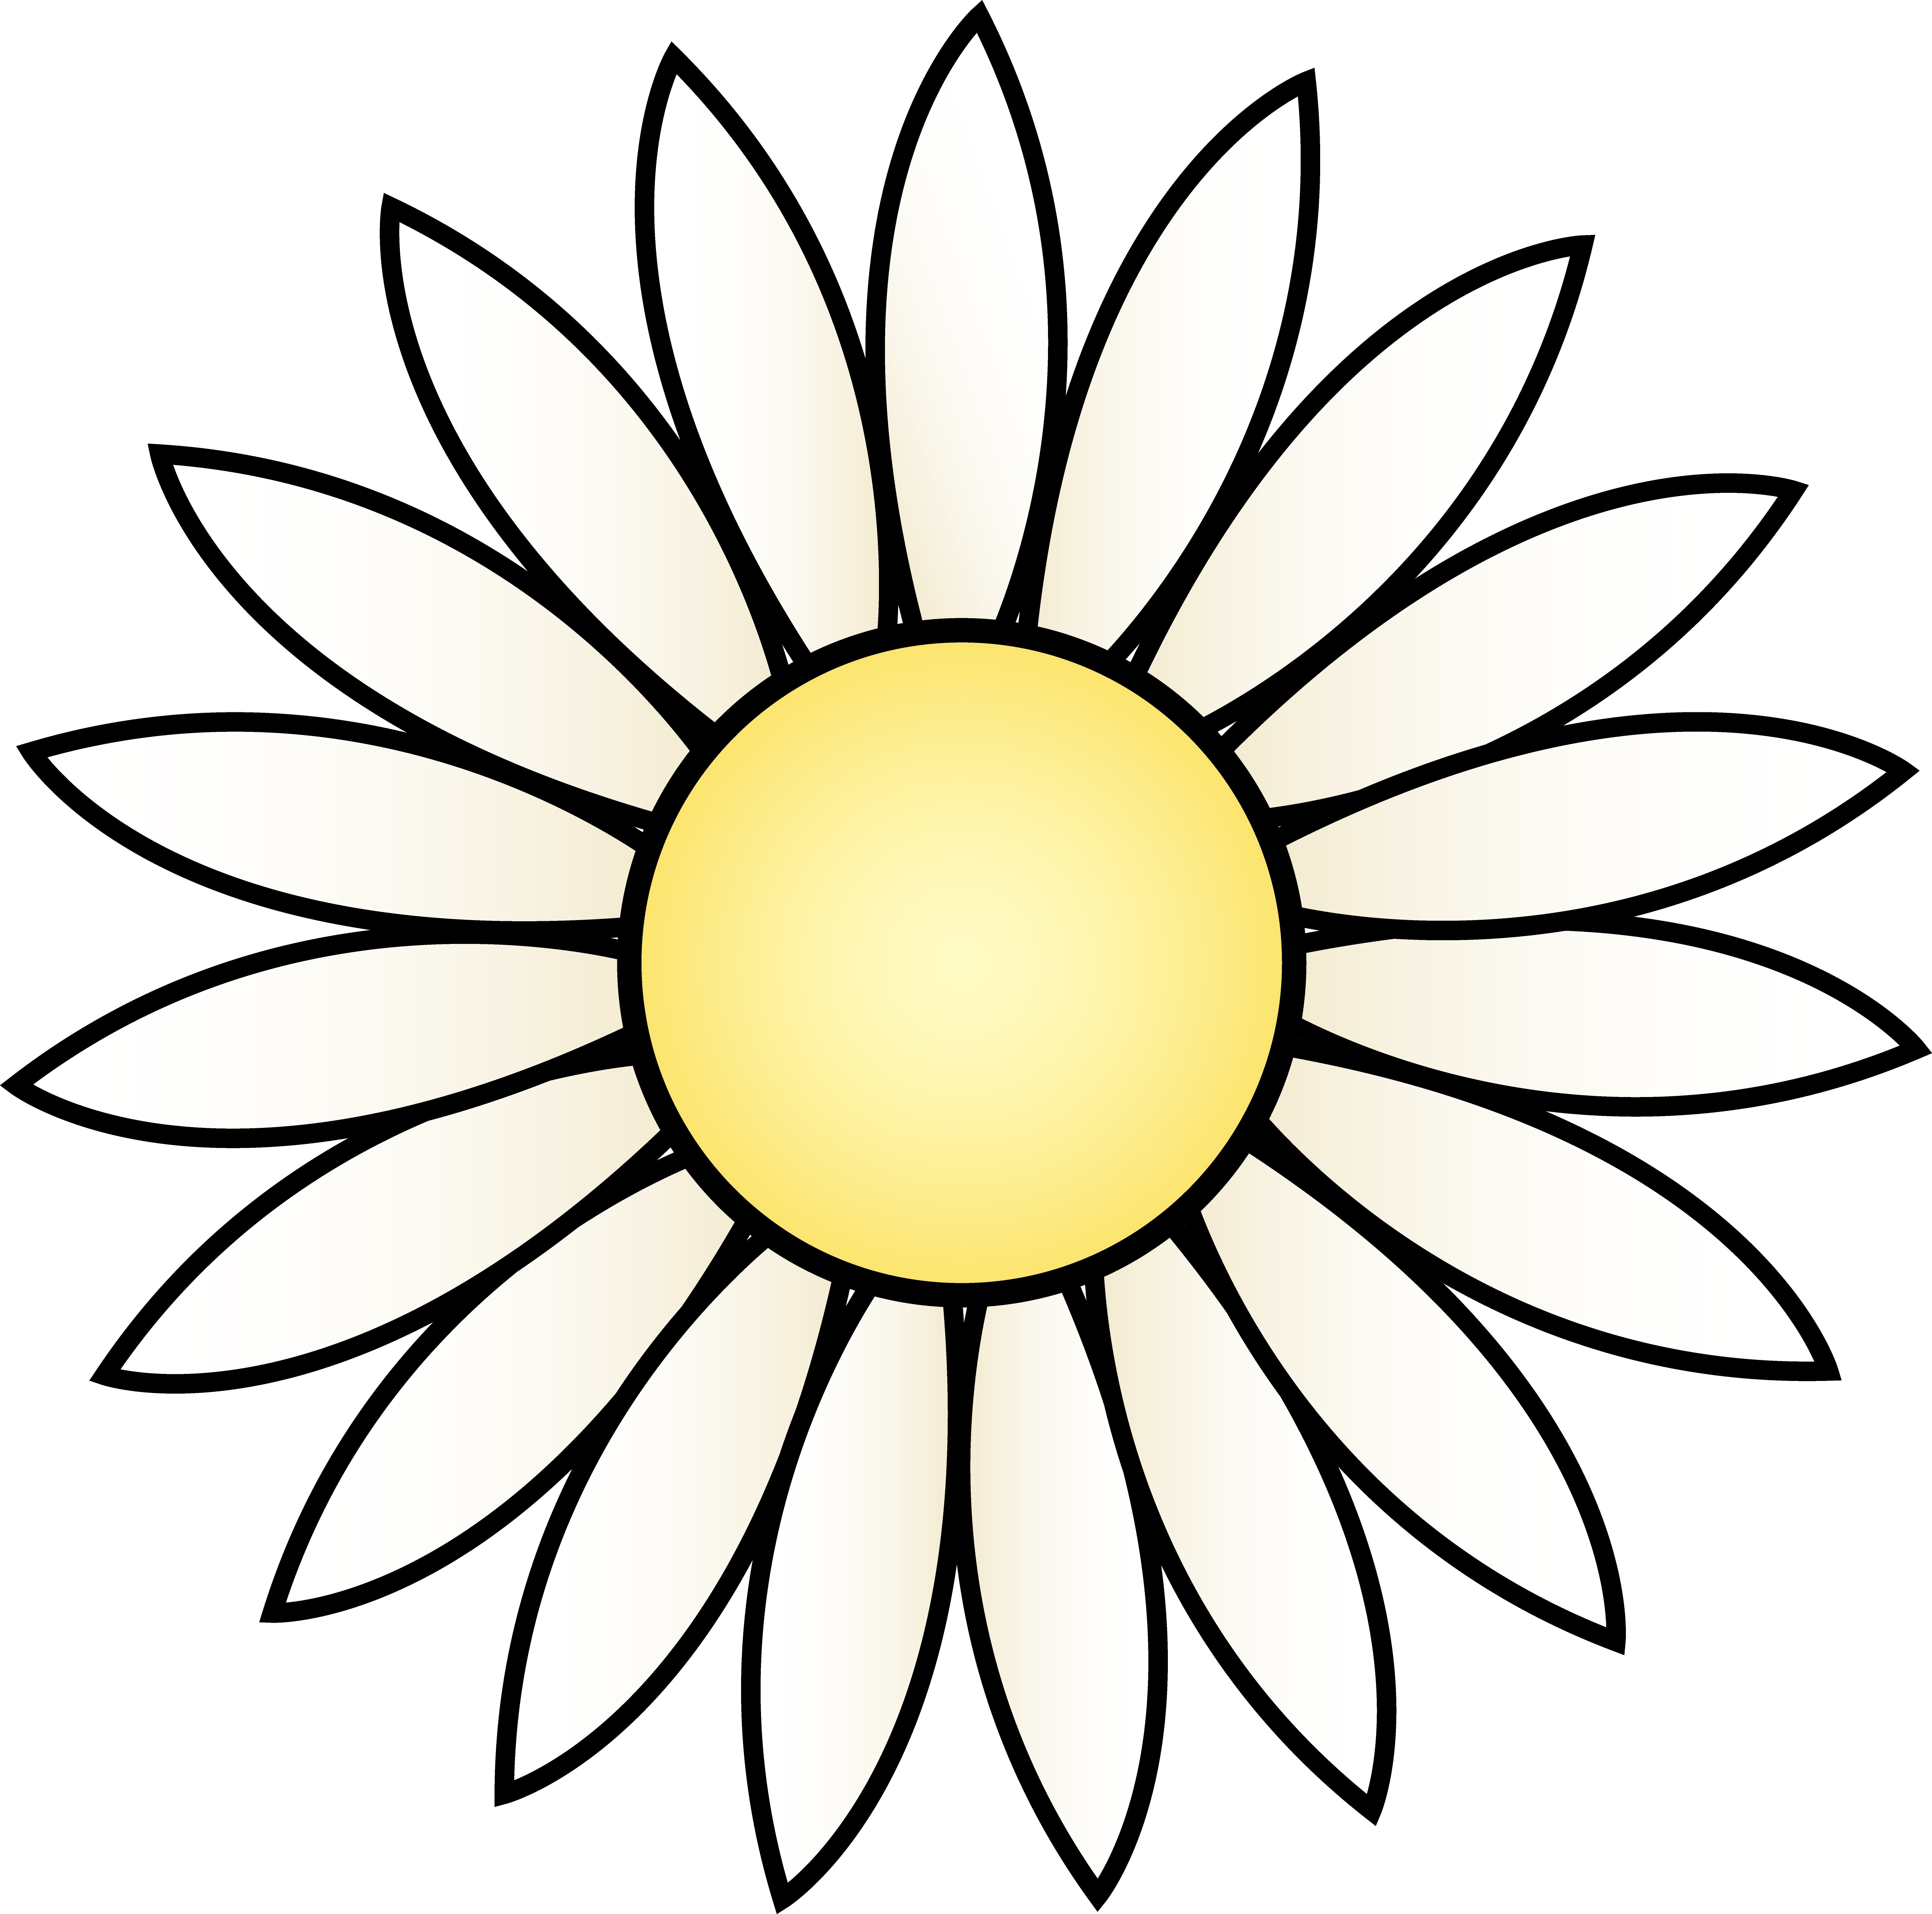 Daisy clip art free clipart panda free clipart images for Free online drawing